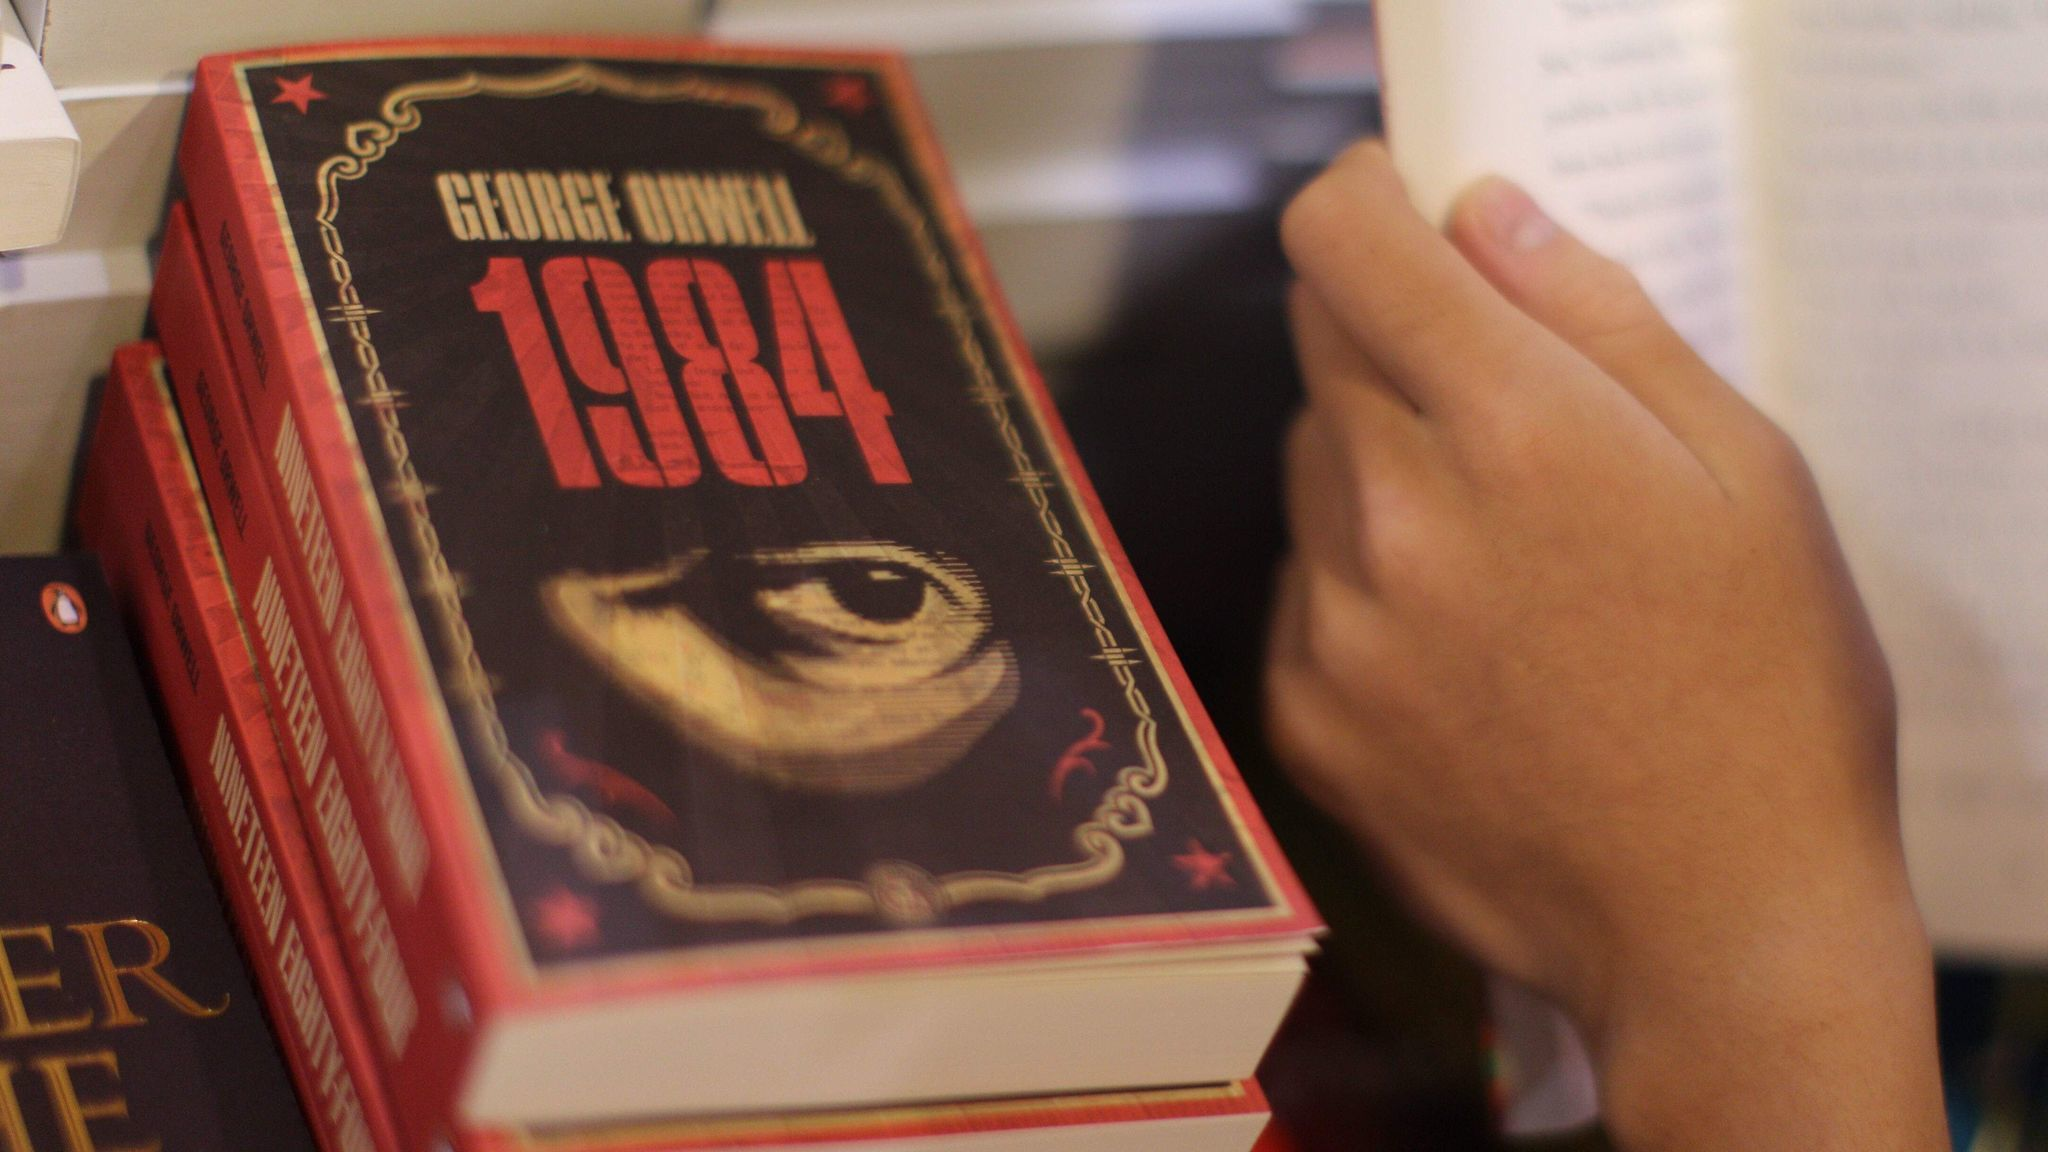 1984 wasn t supposed to be an instruction manual